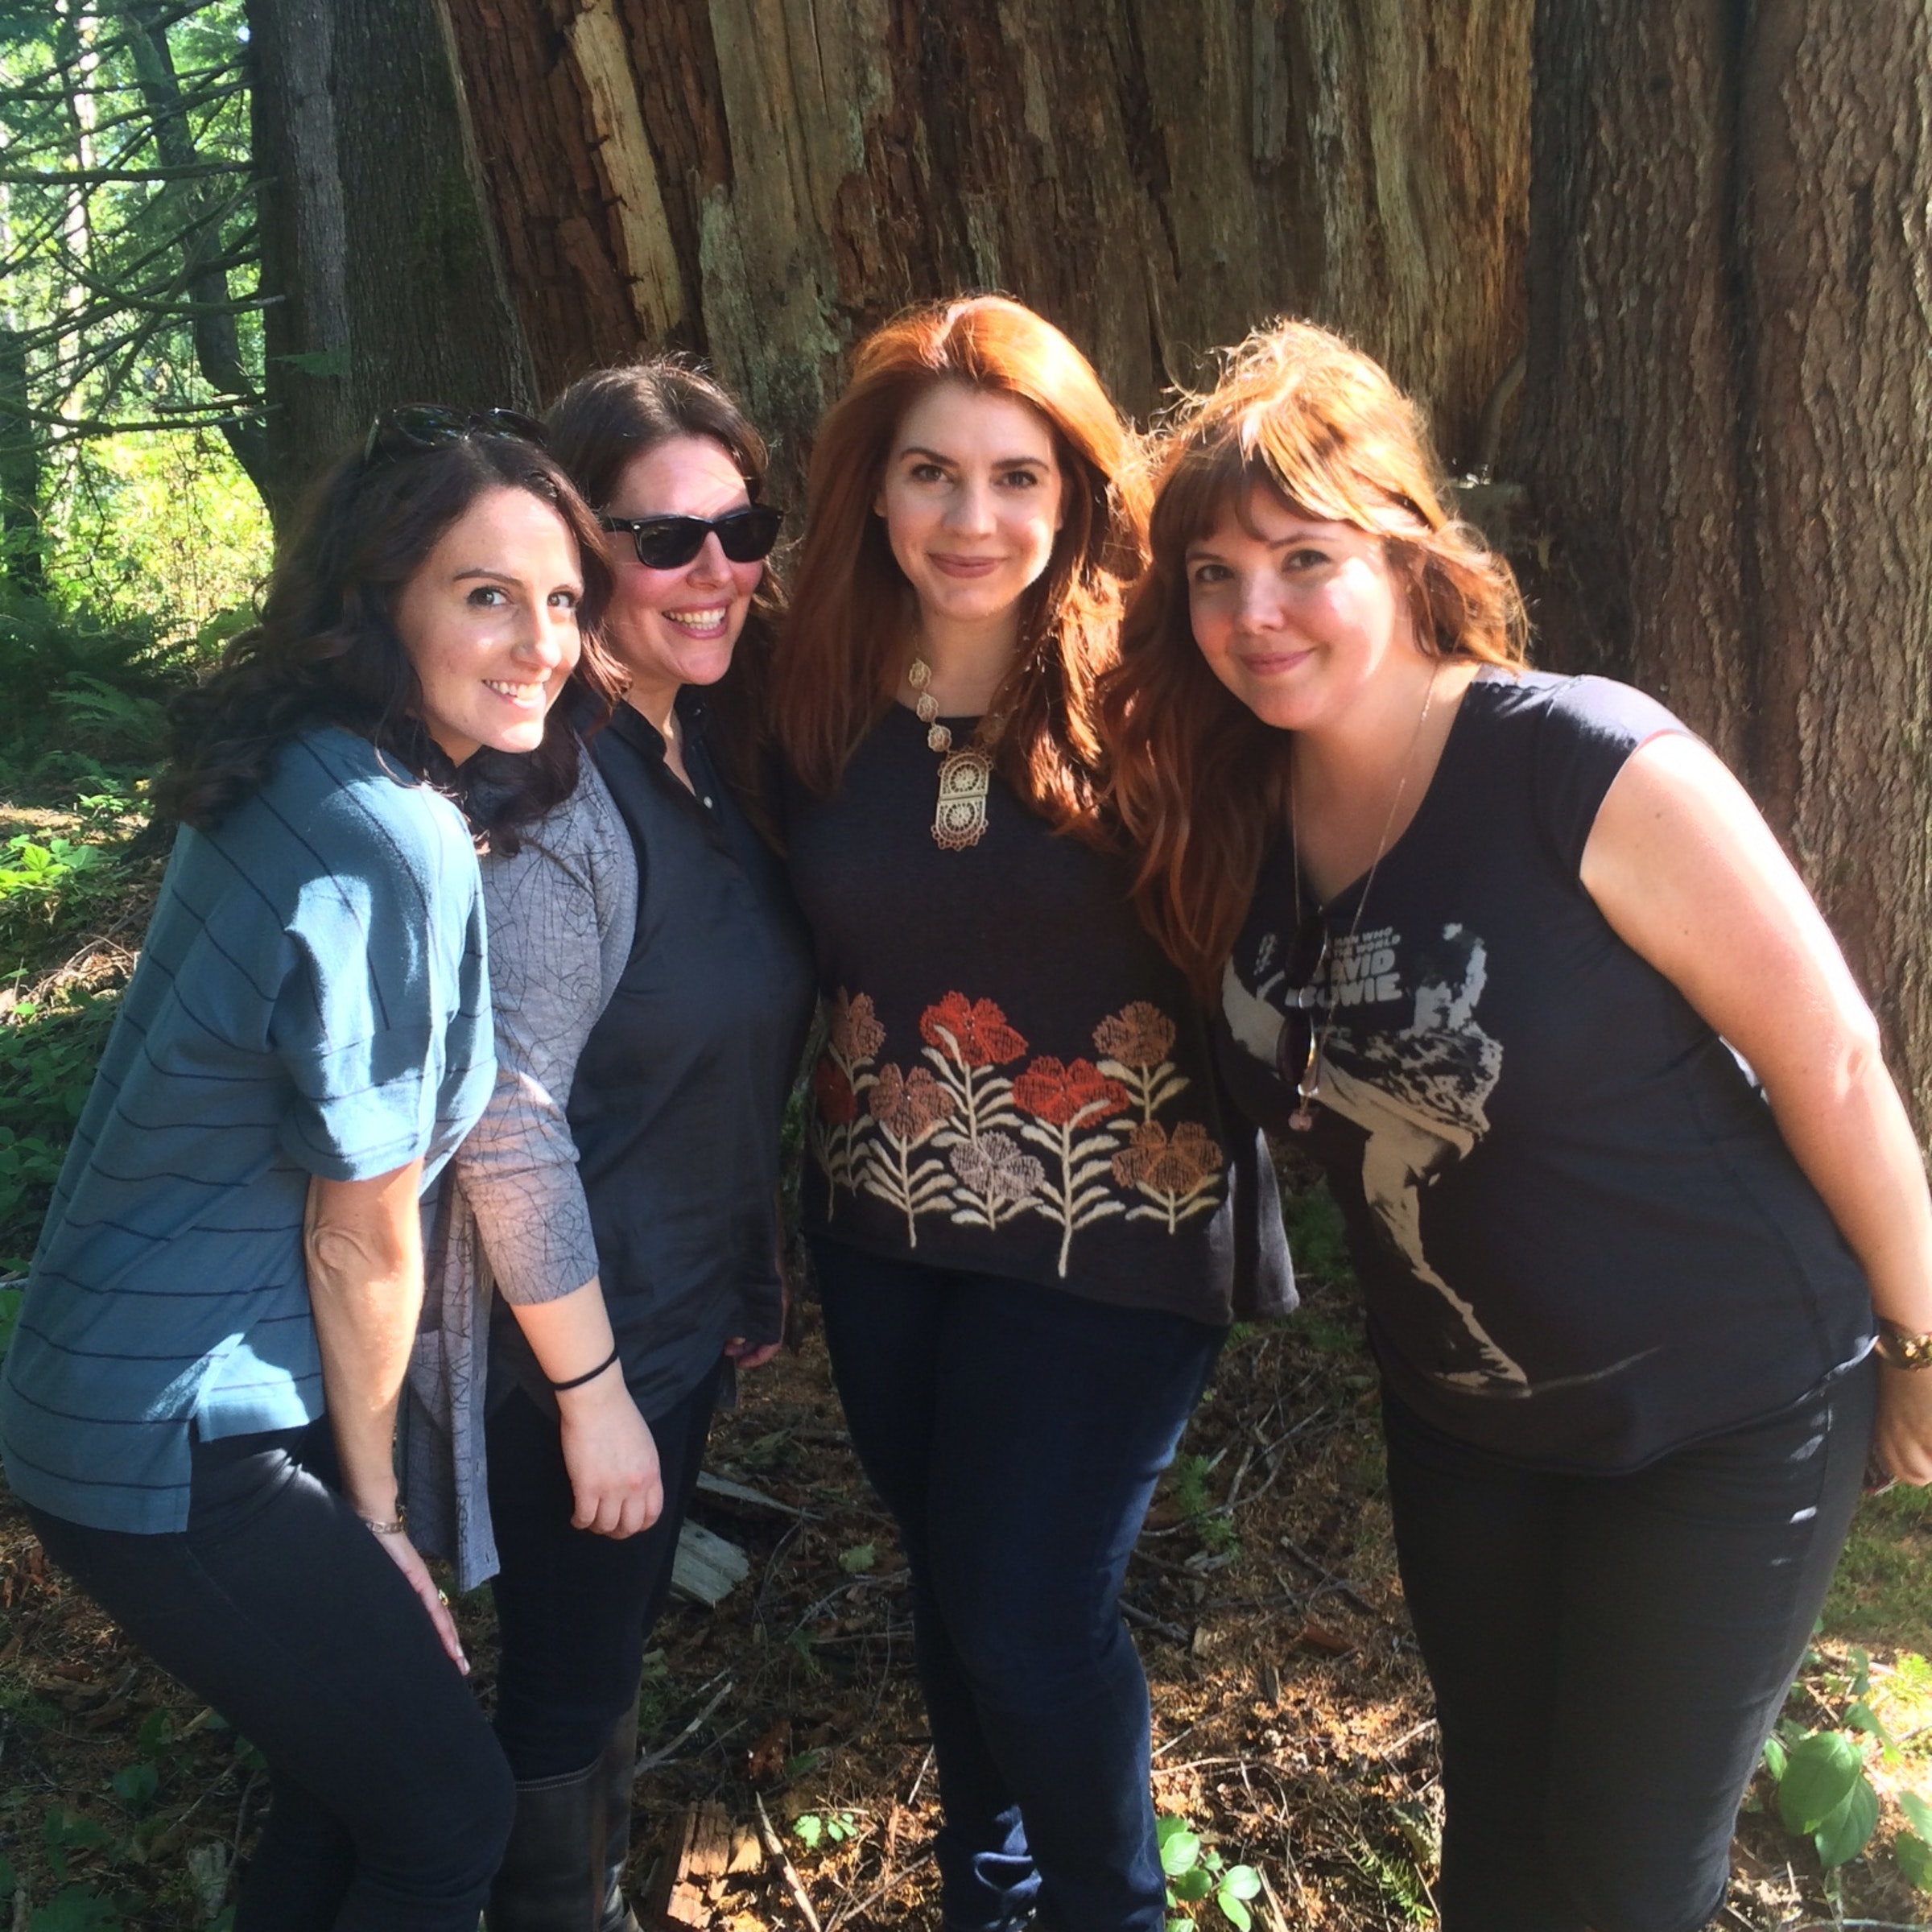 Decker (right) and Pierce (left) with Twilight author Stephenie Meyer (middle)